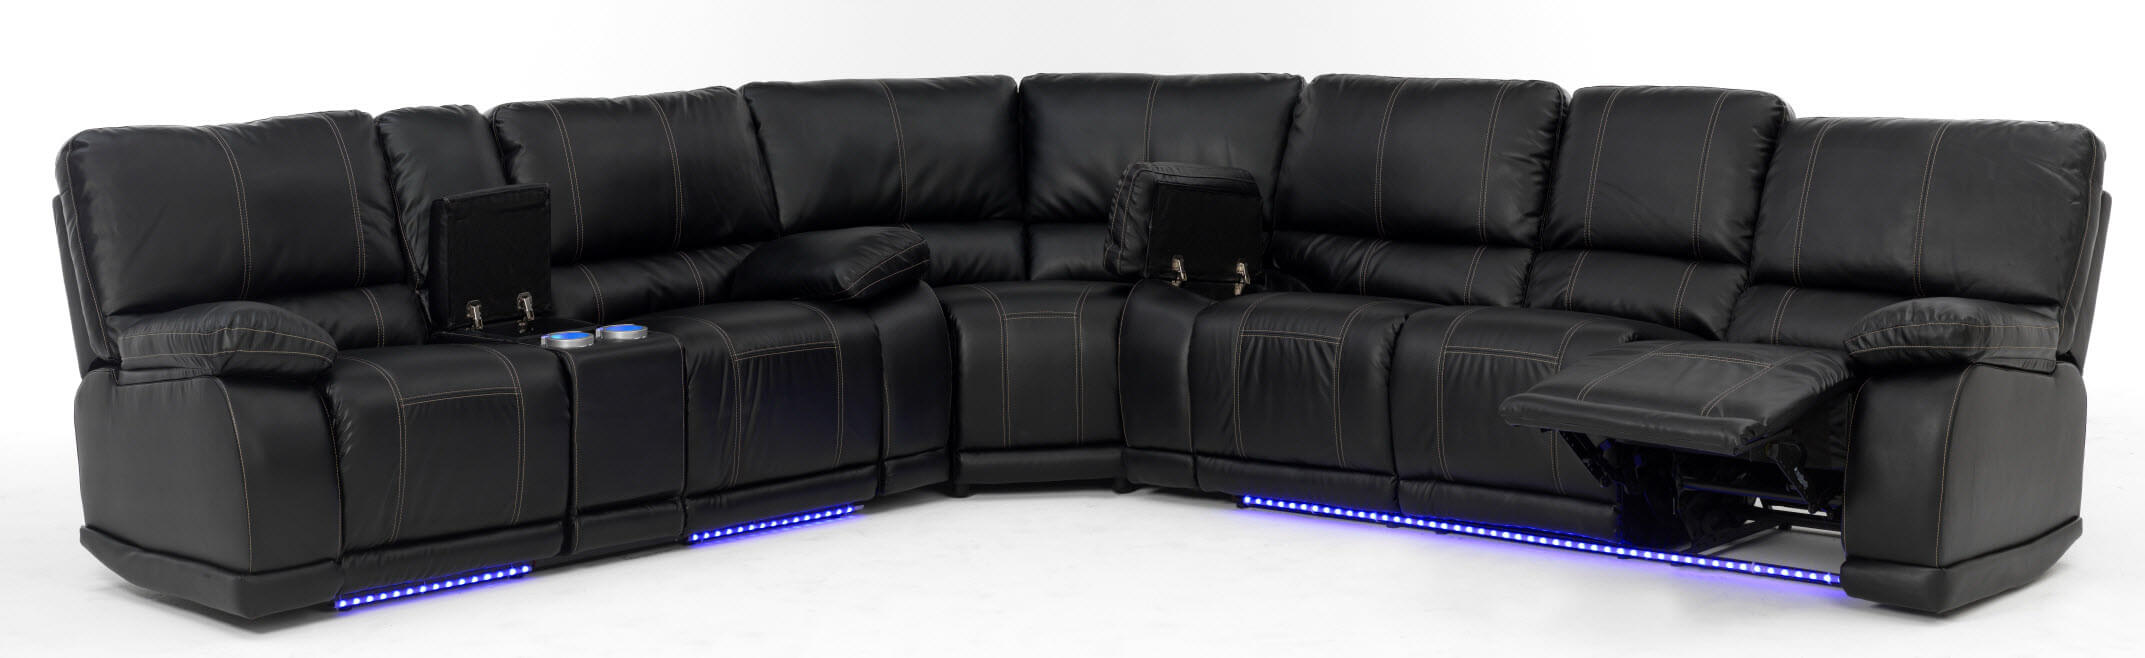 Motion Living Room Furniture & Electra Power Reclining Sectional with LED Lights islam-shia.org